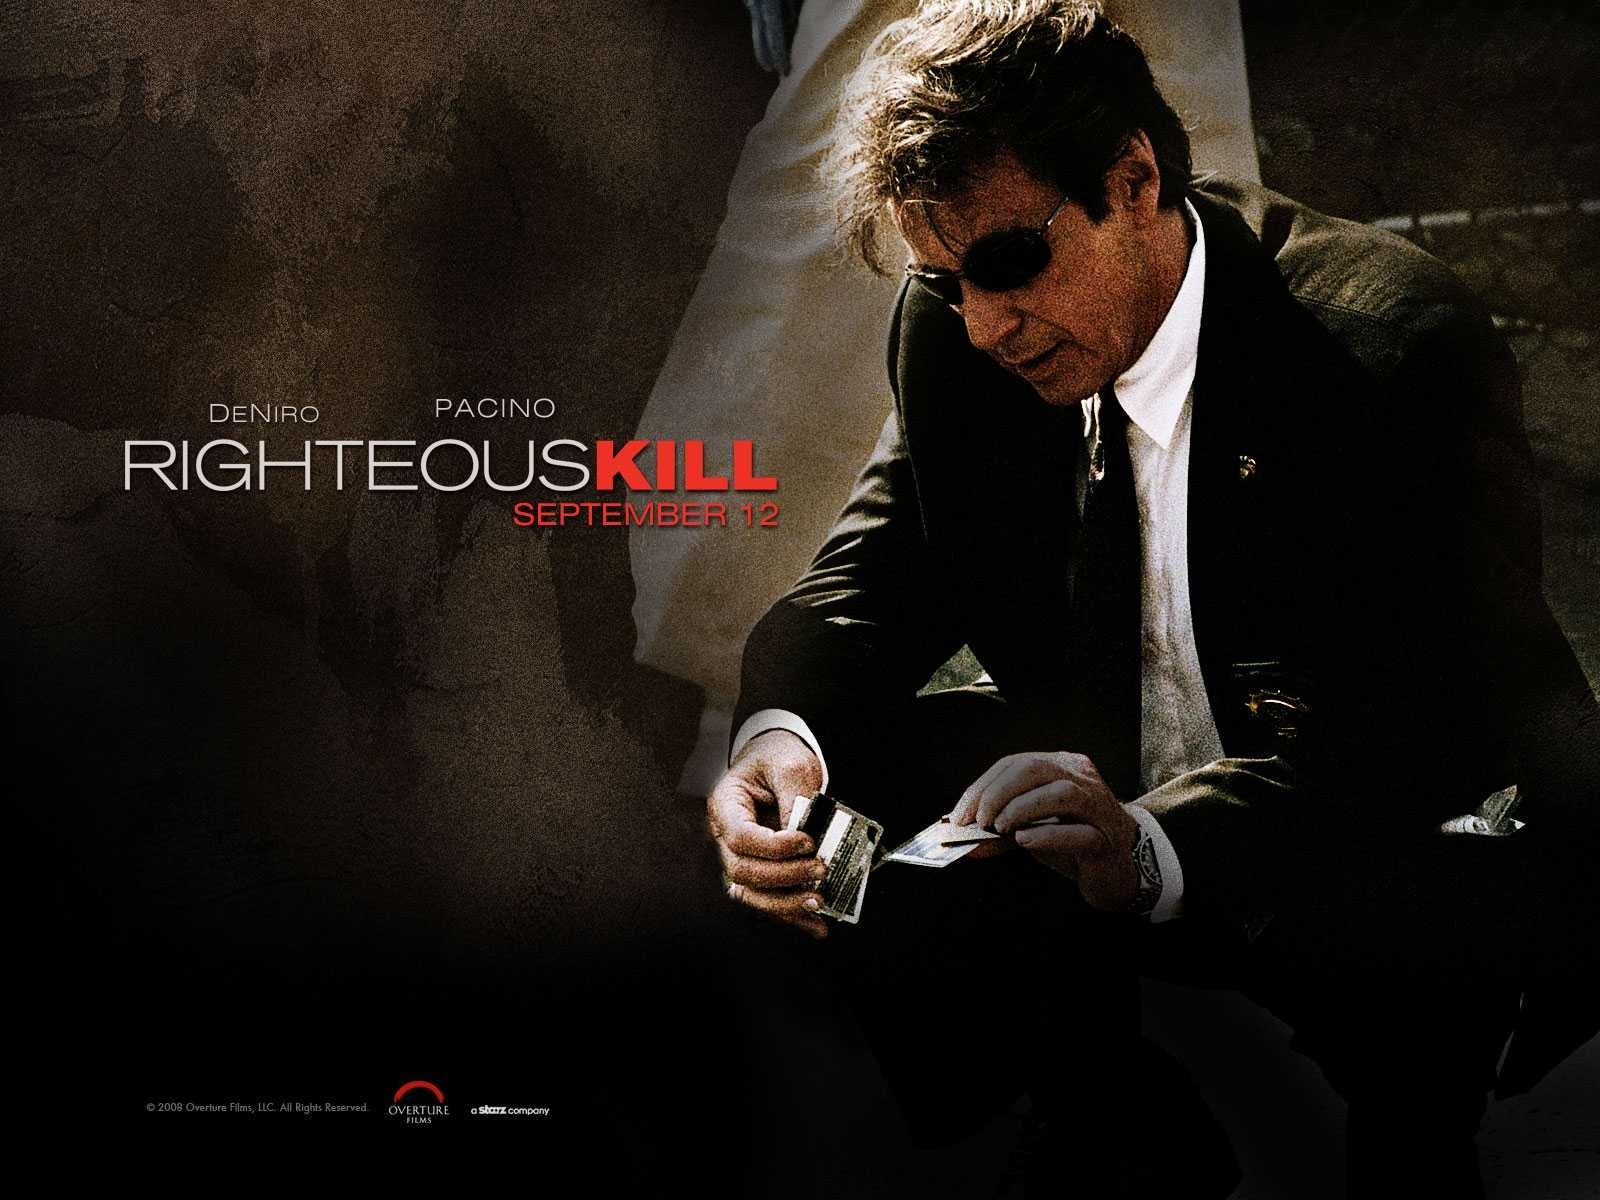 Un wallpaper del film Sfida senza regole - Righteous Kill con Al Pacino